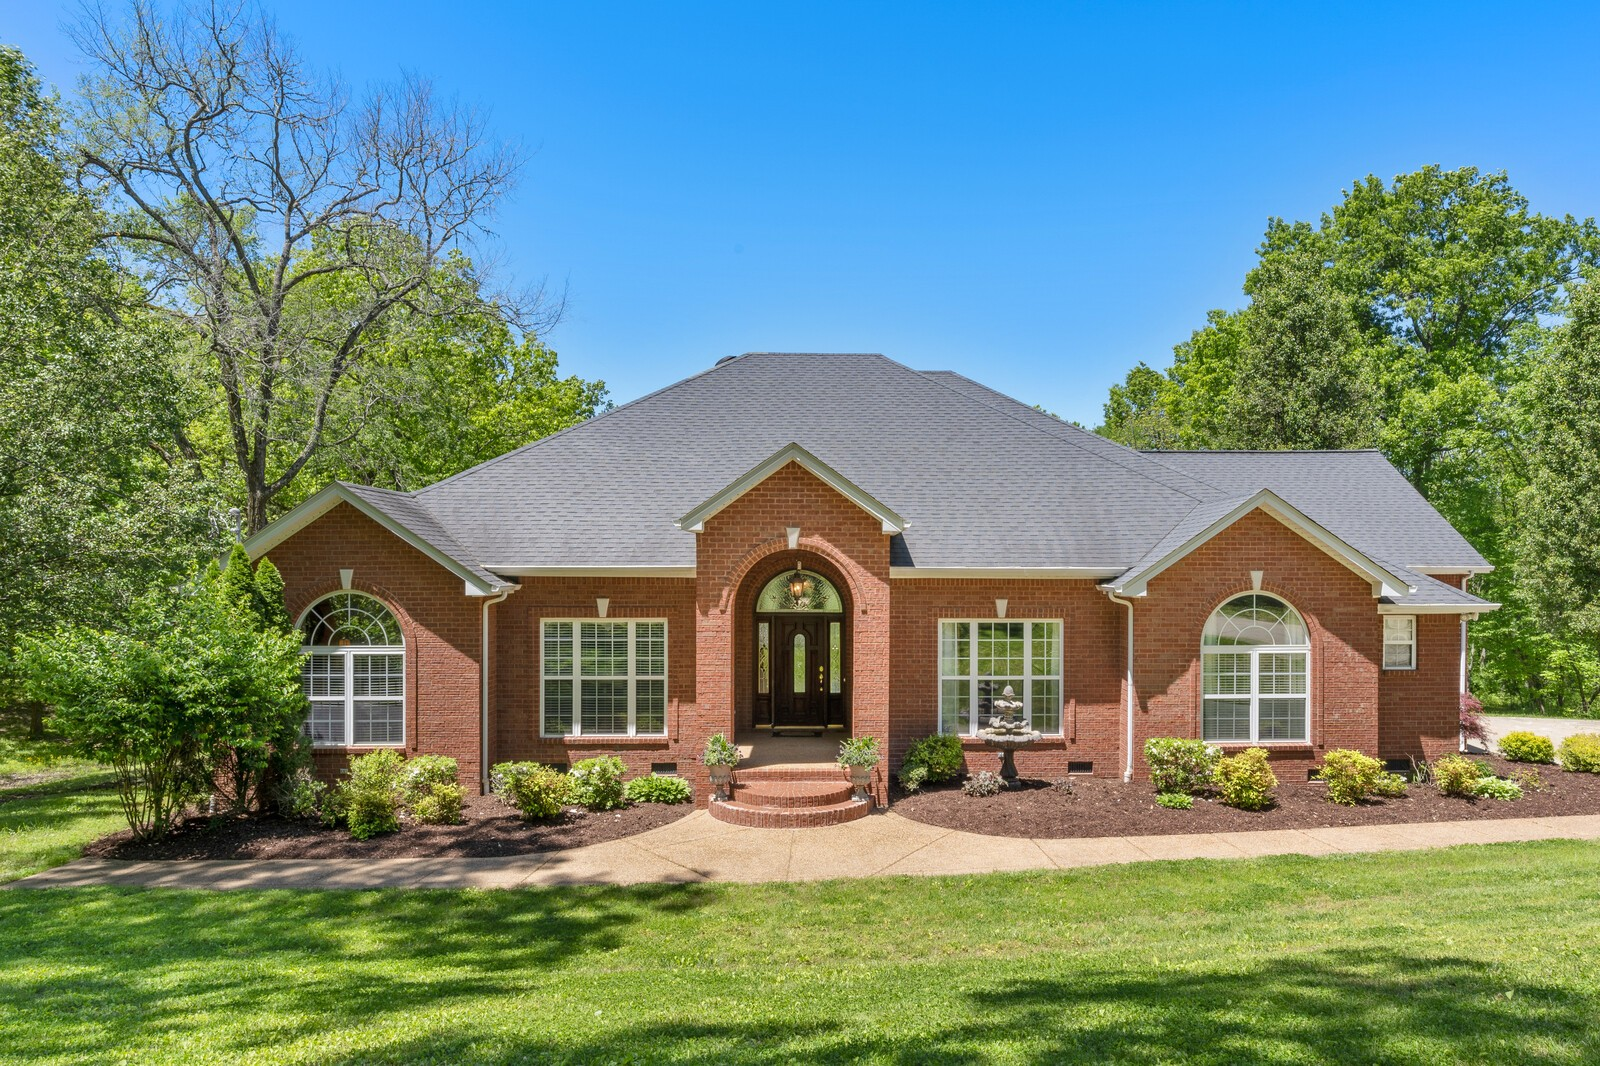 1800 Liberty Ln Property Photo - Gallatin, TN real estate listing